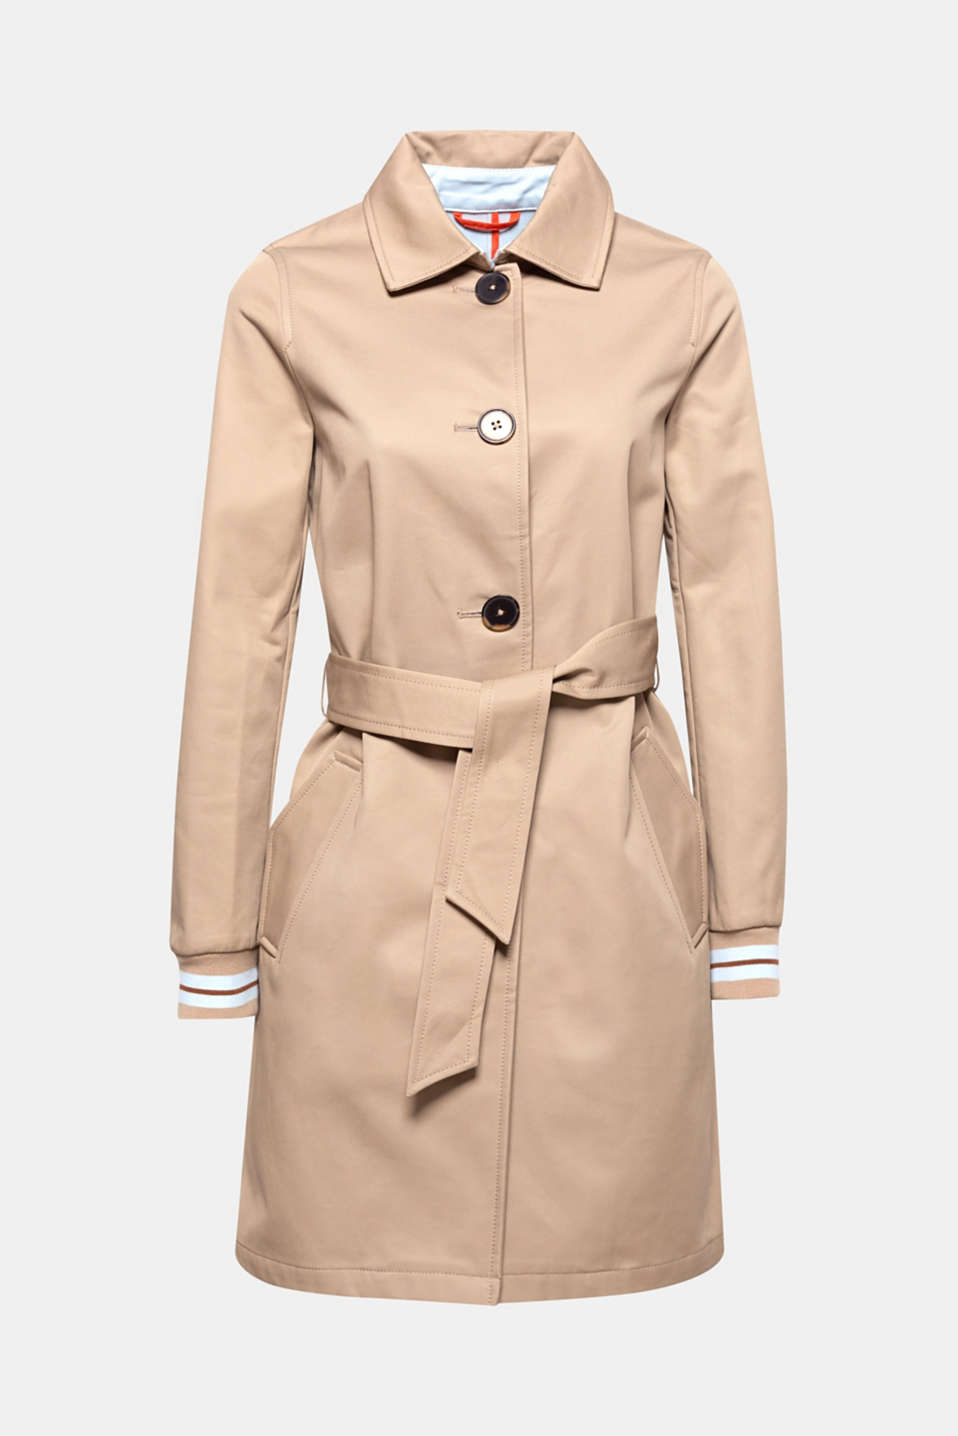 A fashion piece for the changing of the seasons: the striped, ribbed cuffs give this straight cut trench coat a new, sporty note.